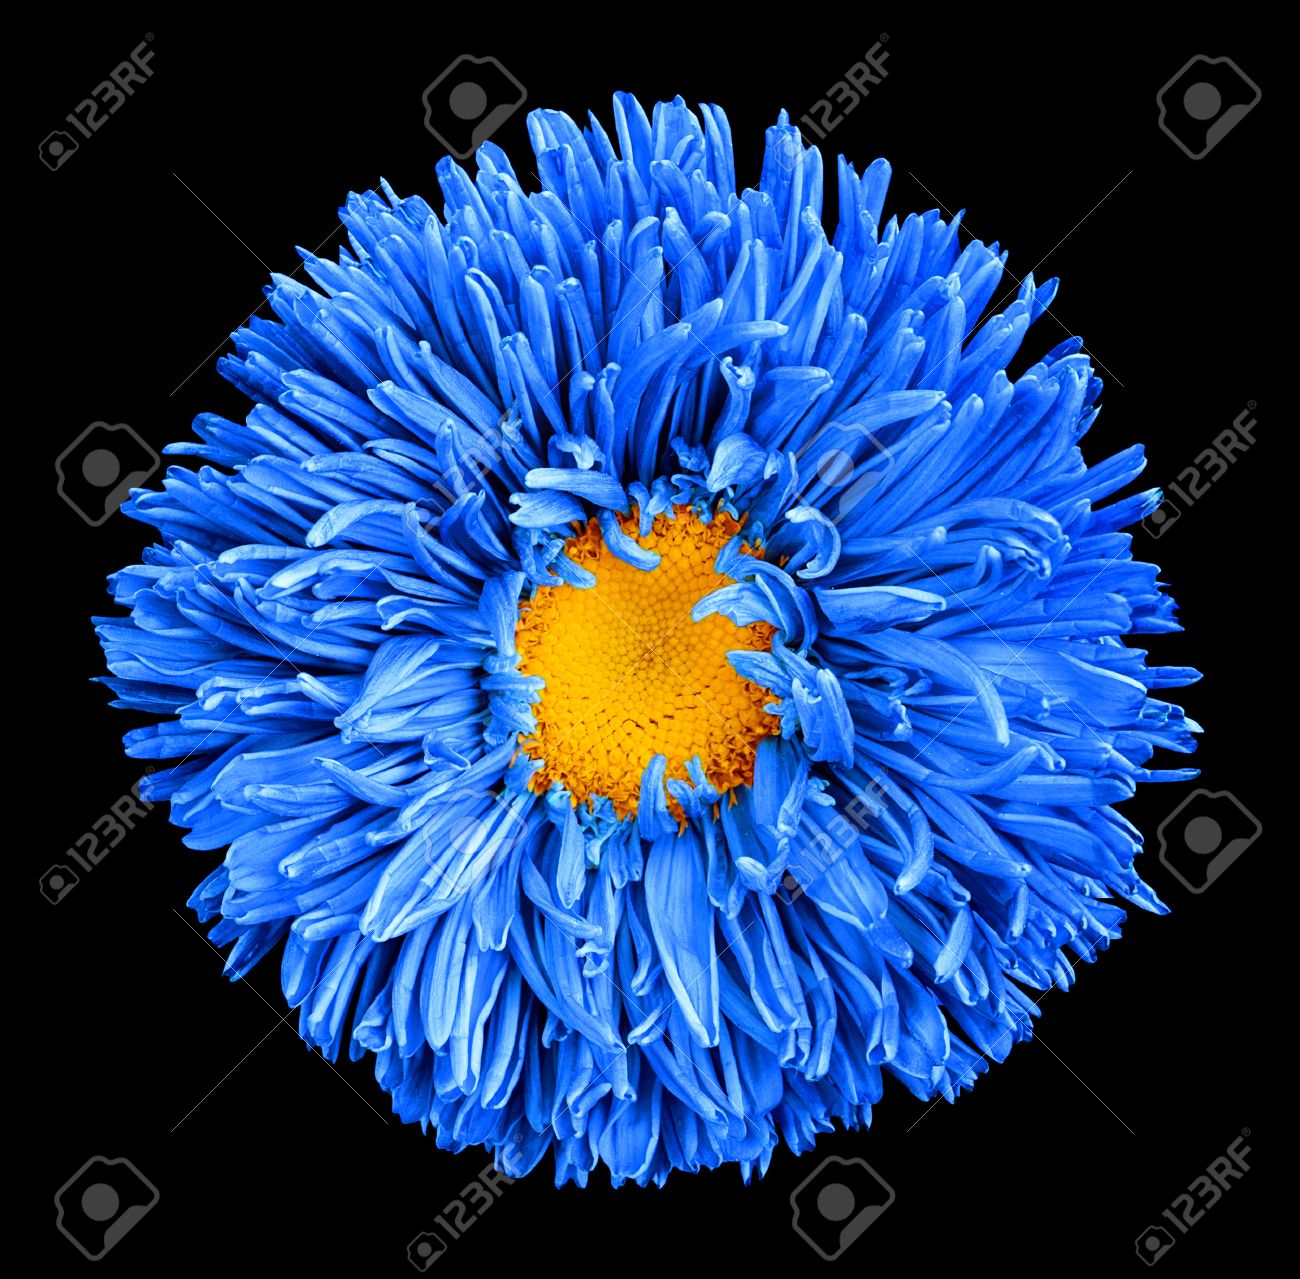 blue aster flower with yellow heart macro photography isolated, Natural flower